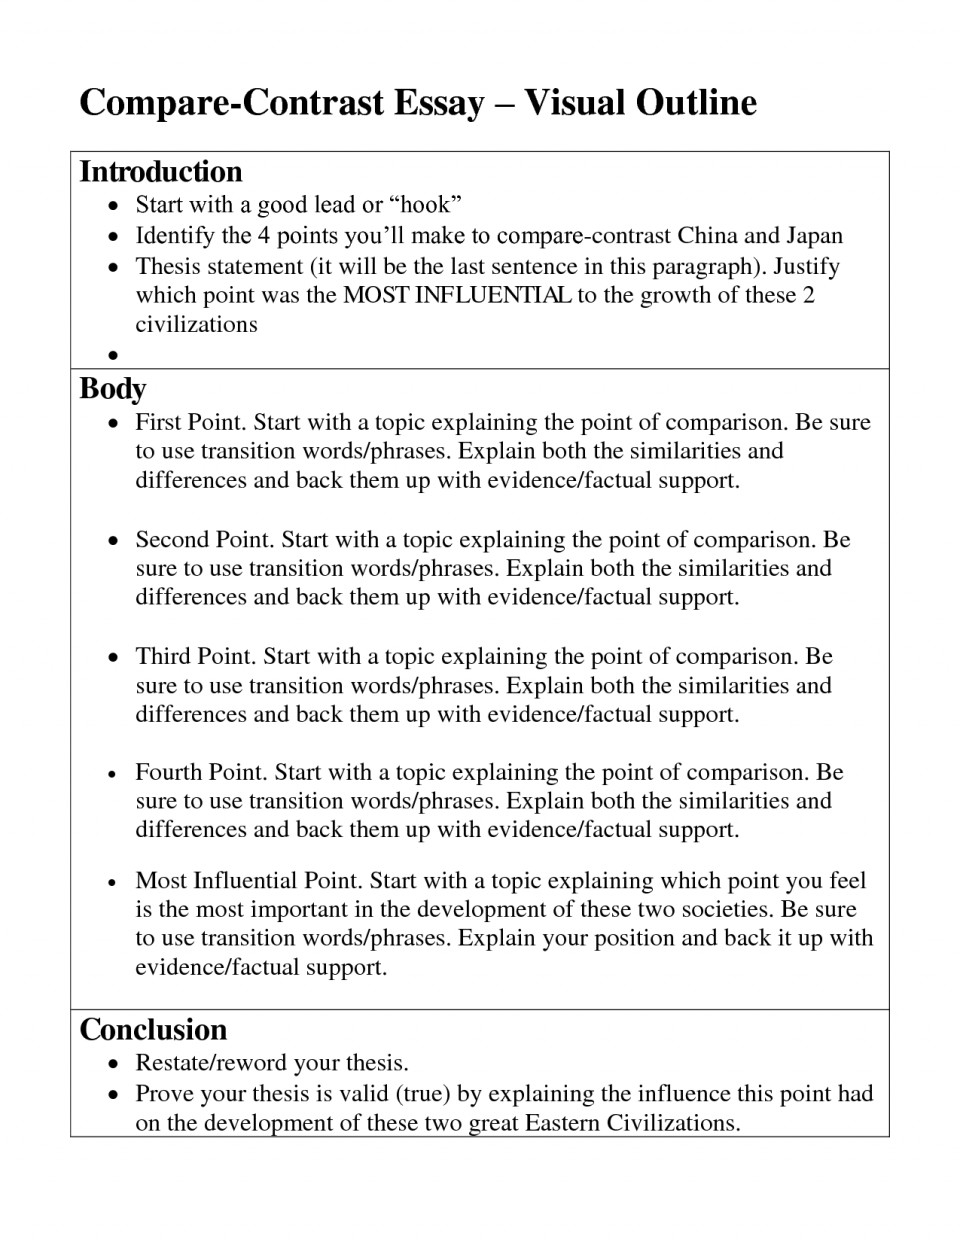 017 Compare And Contrast Essay Frightening Examples Elementary Outline For Middle School Introduction 960